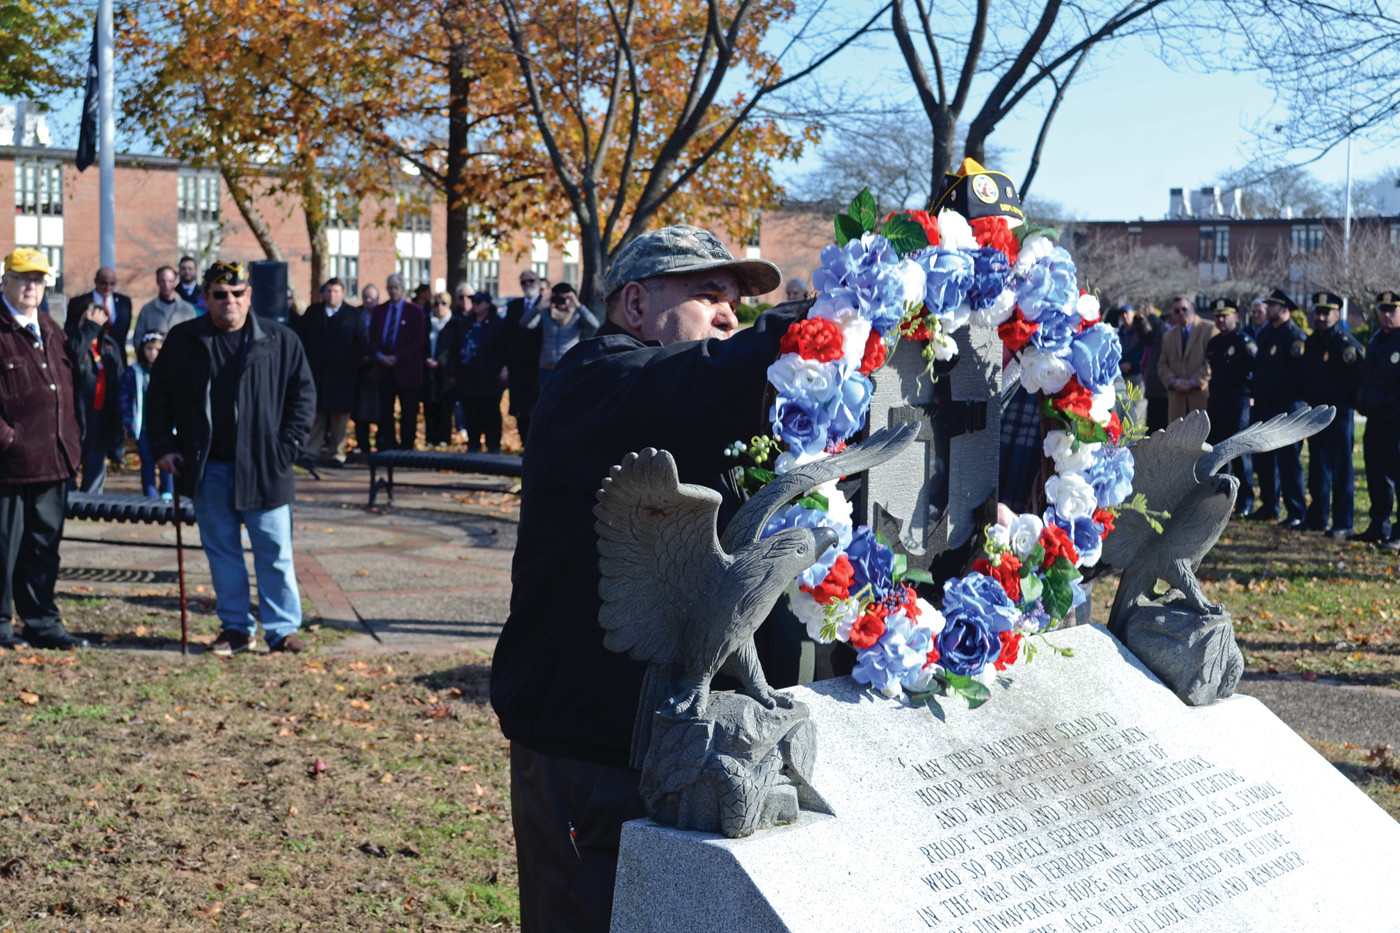 A SYMBOLIC GESTURE: Anthony Rodrigues, president of the Warwick Veterans Council, lays the ceremonial wreath on the memorial dedicated to Rhode Island service members.